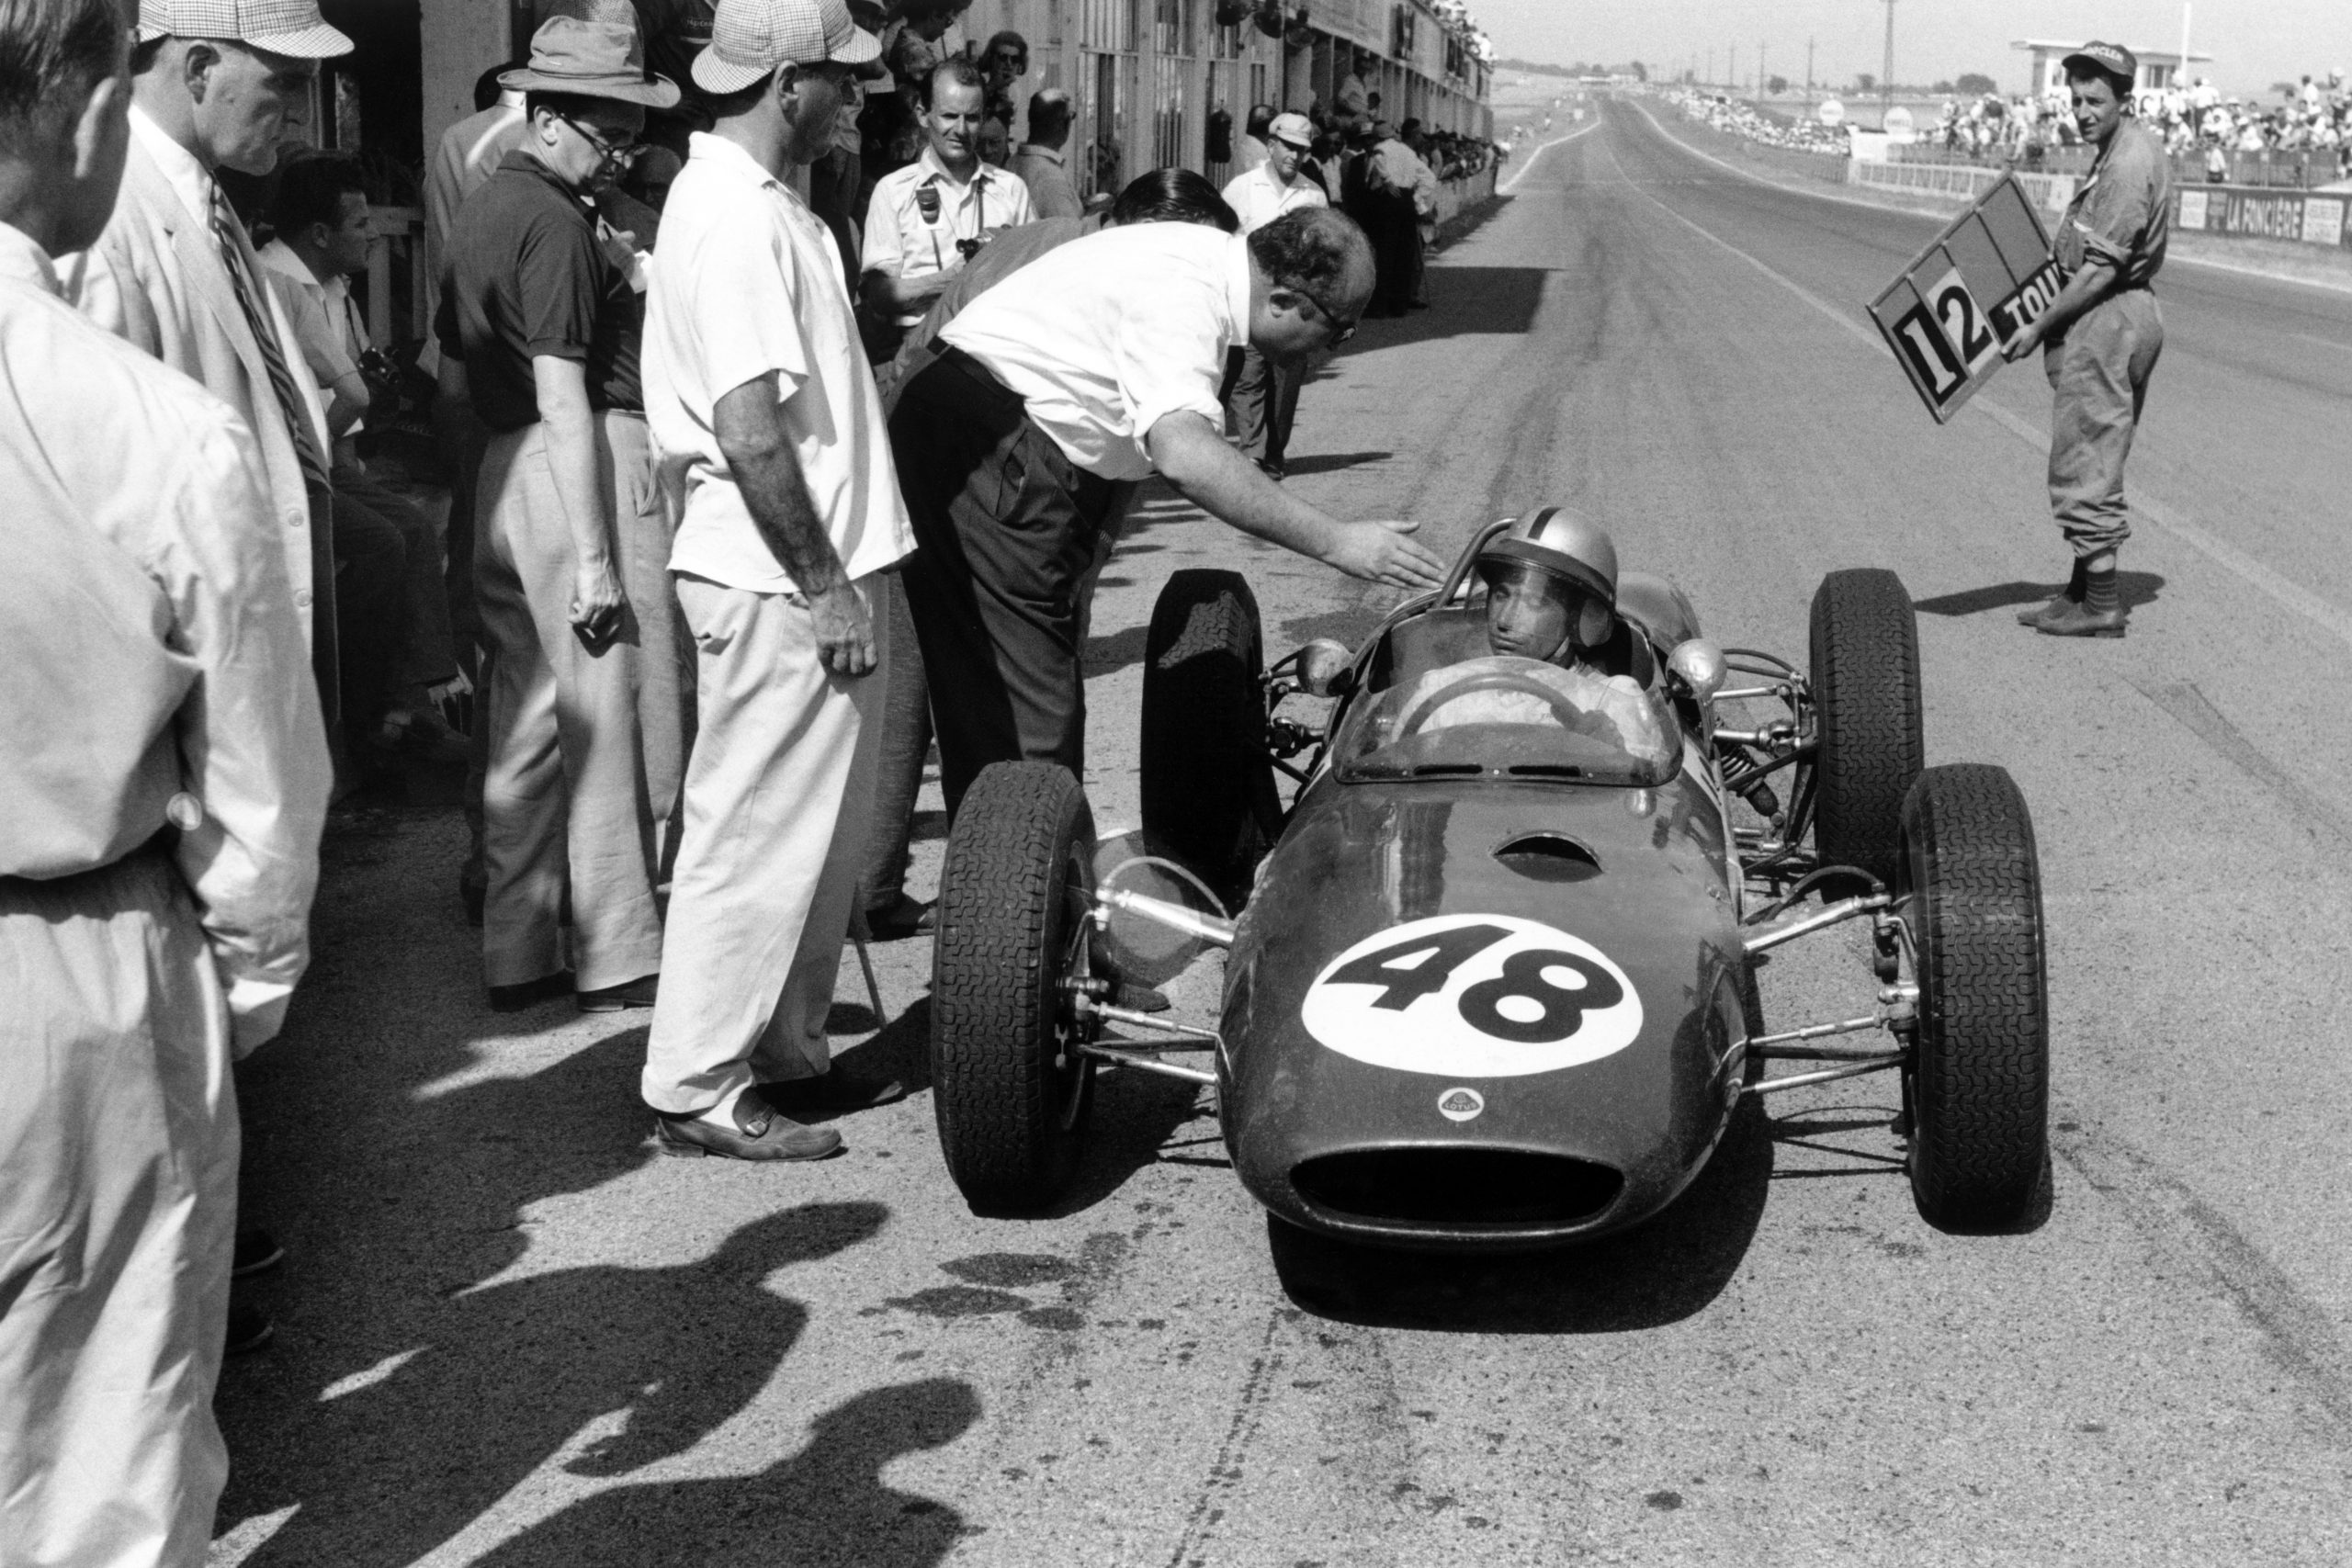 Willy Mairesse's Lotus 21-Climax in the pits.